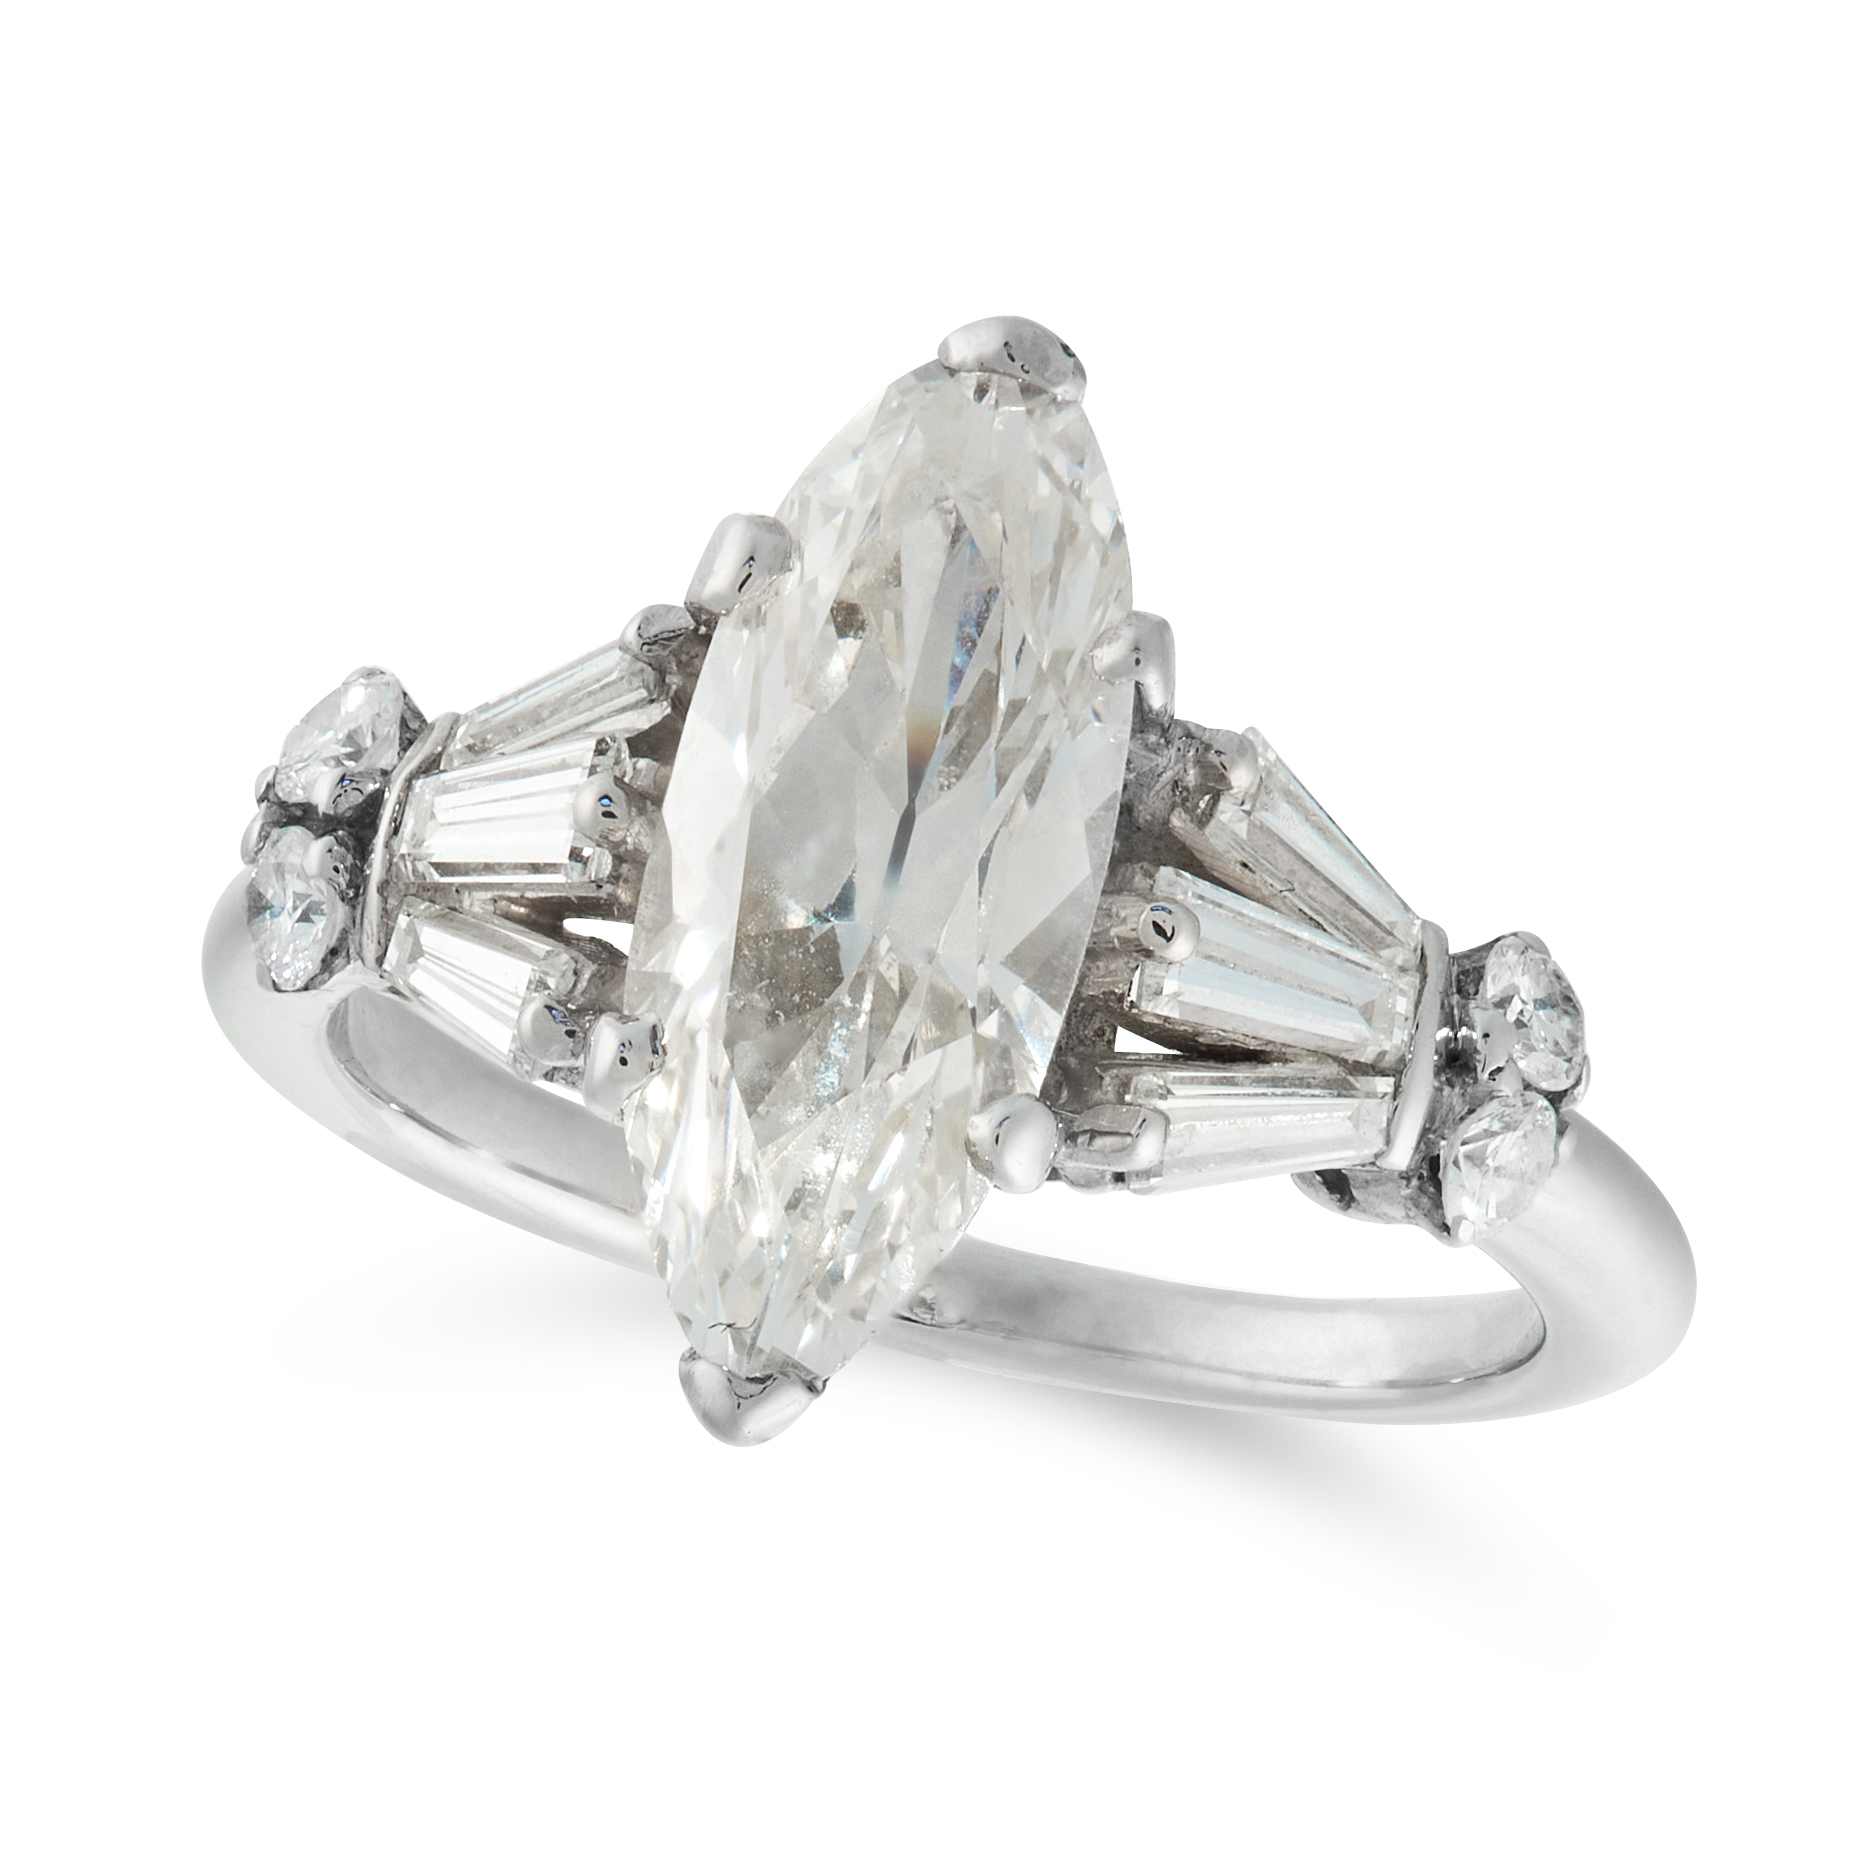 A SOLITAIRE DIAMOND DRESS RING set with a central marquise shaped old cut diamond of 1.93 carats,